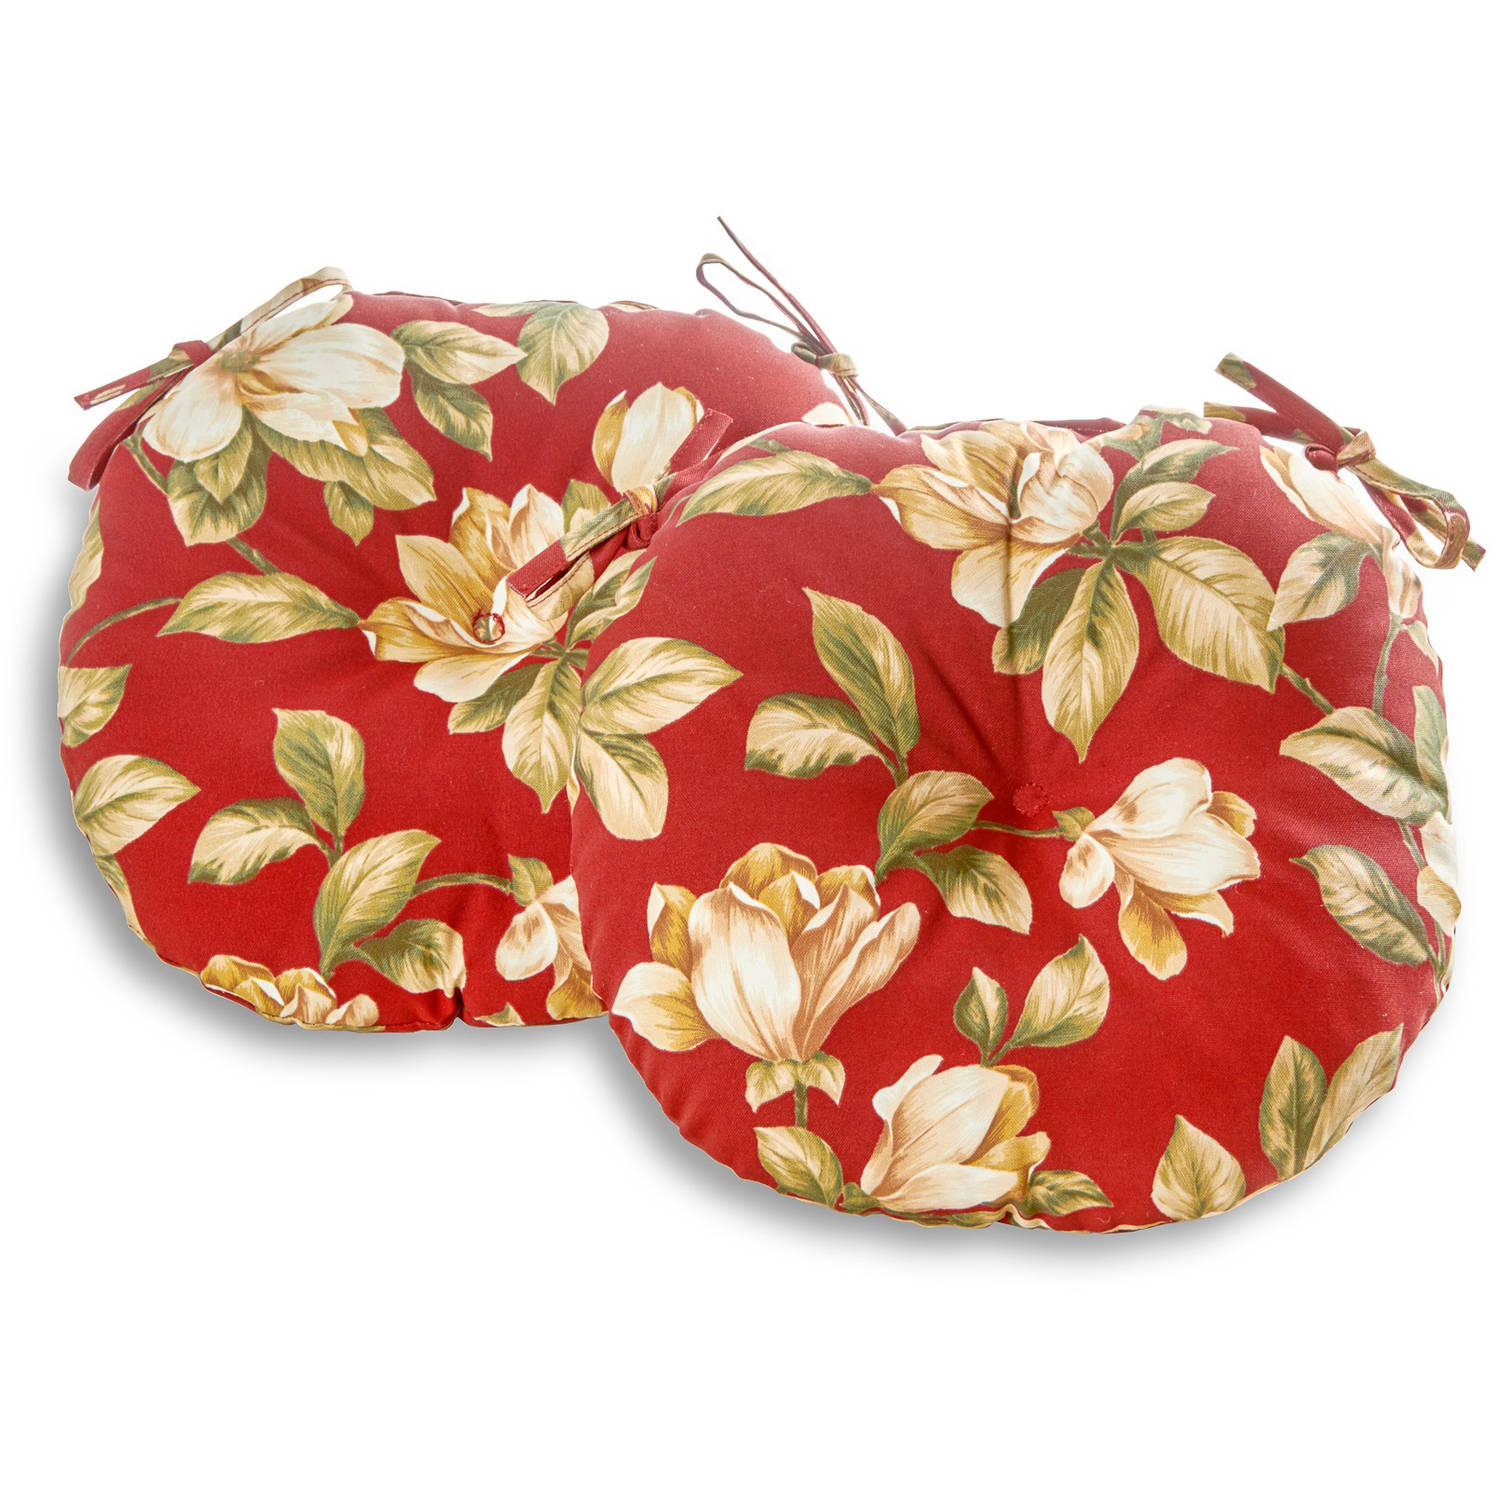 "Greendale Home Fashions 18"" Round Outdoor Bistro Chair Cushion, Set of 2, Roma Floral"